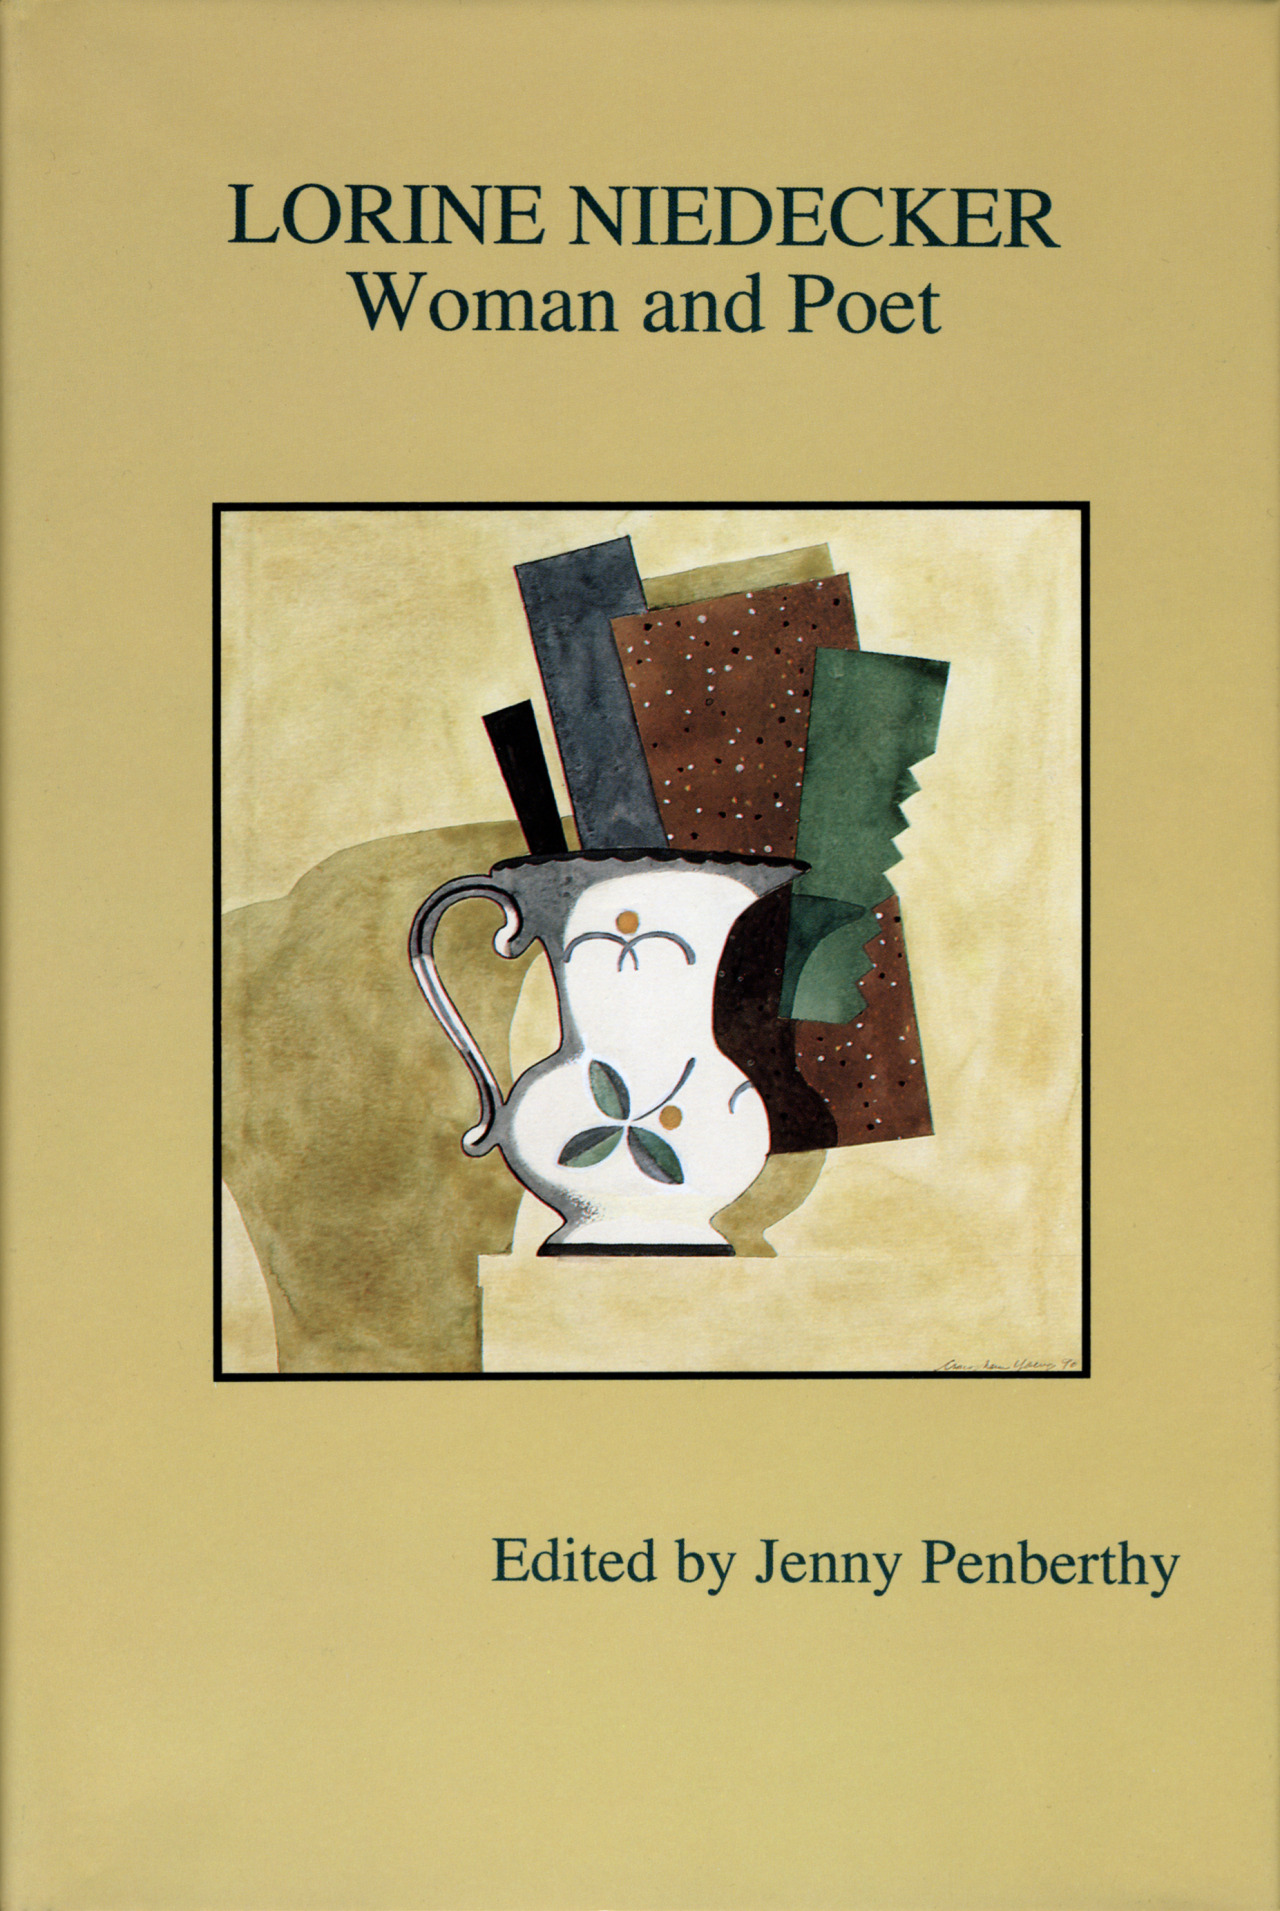 FRIENDS, FROM THE VAULT™Lorine Niedecker: Woman and Poet | edited by Jenny Penberthy | National Poetry Foundation